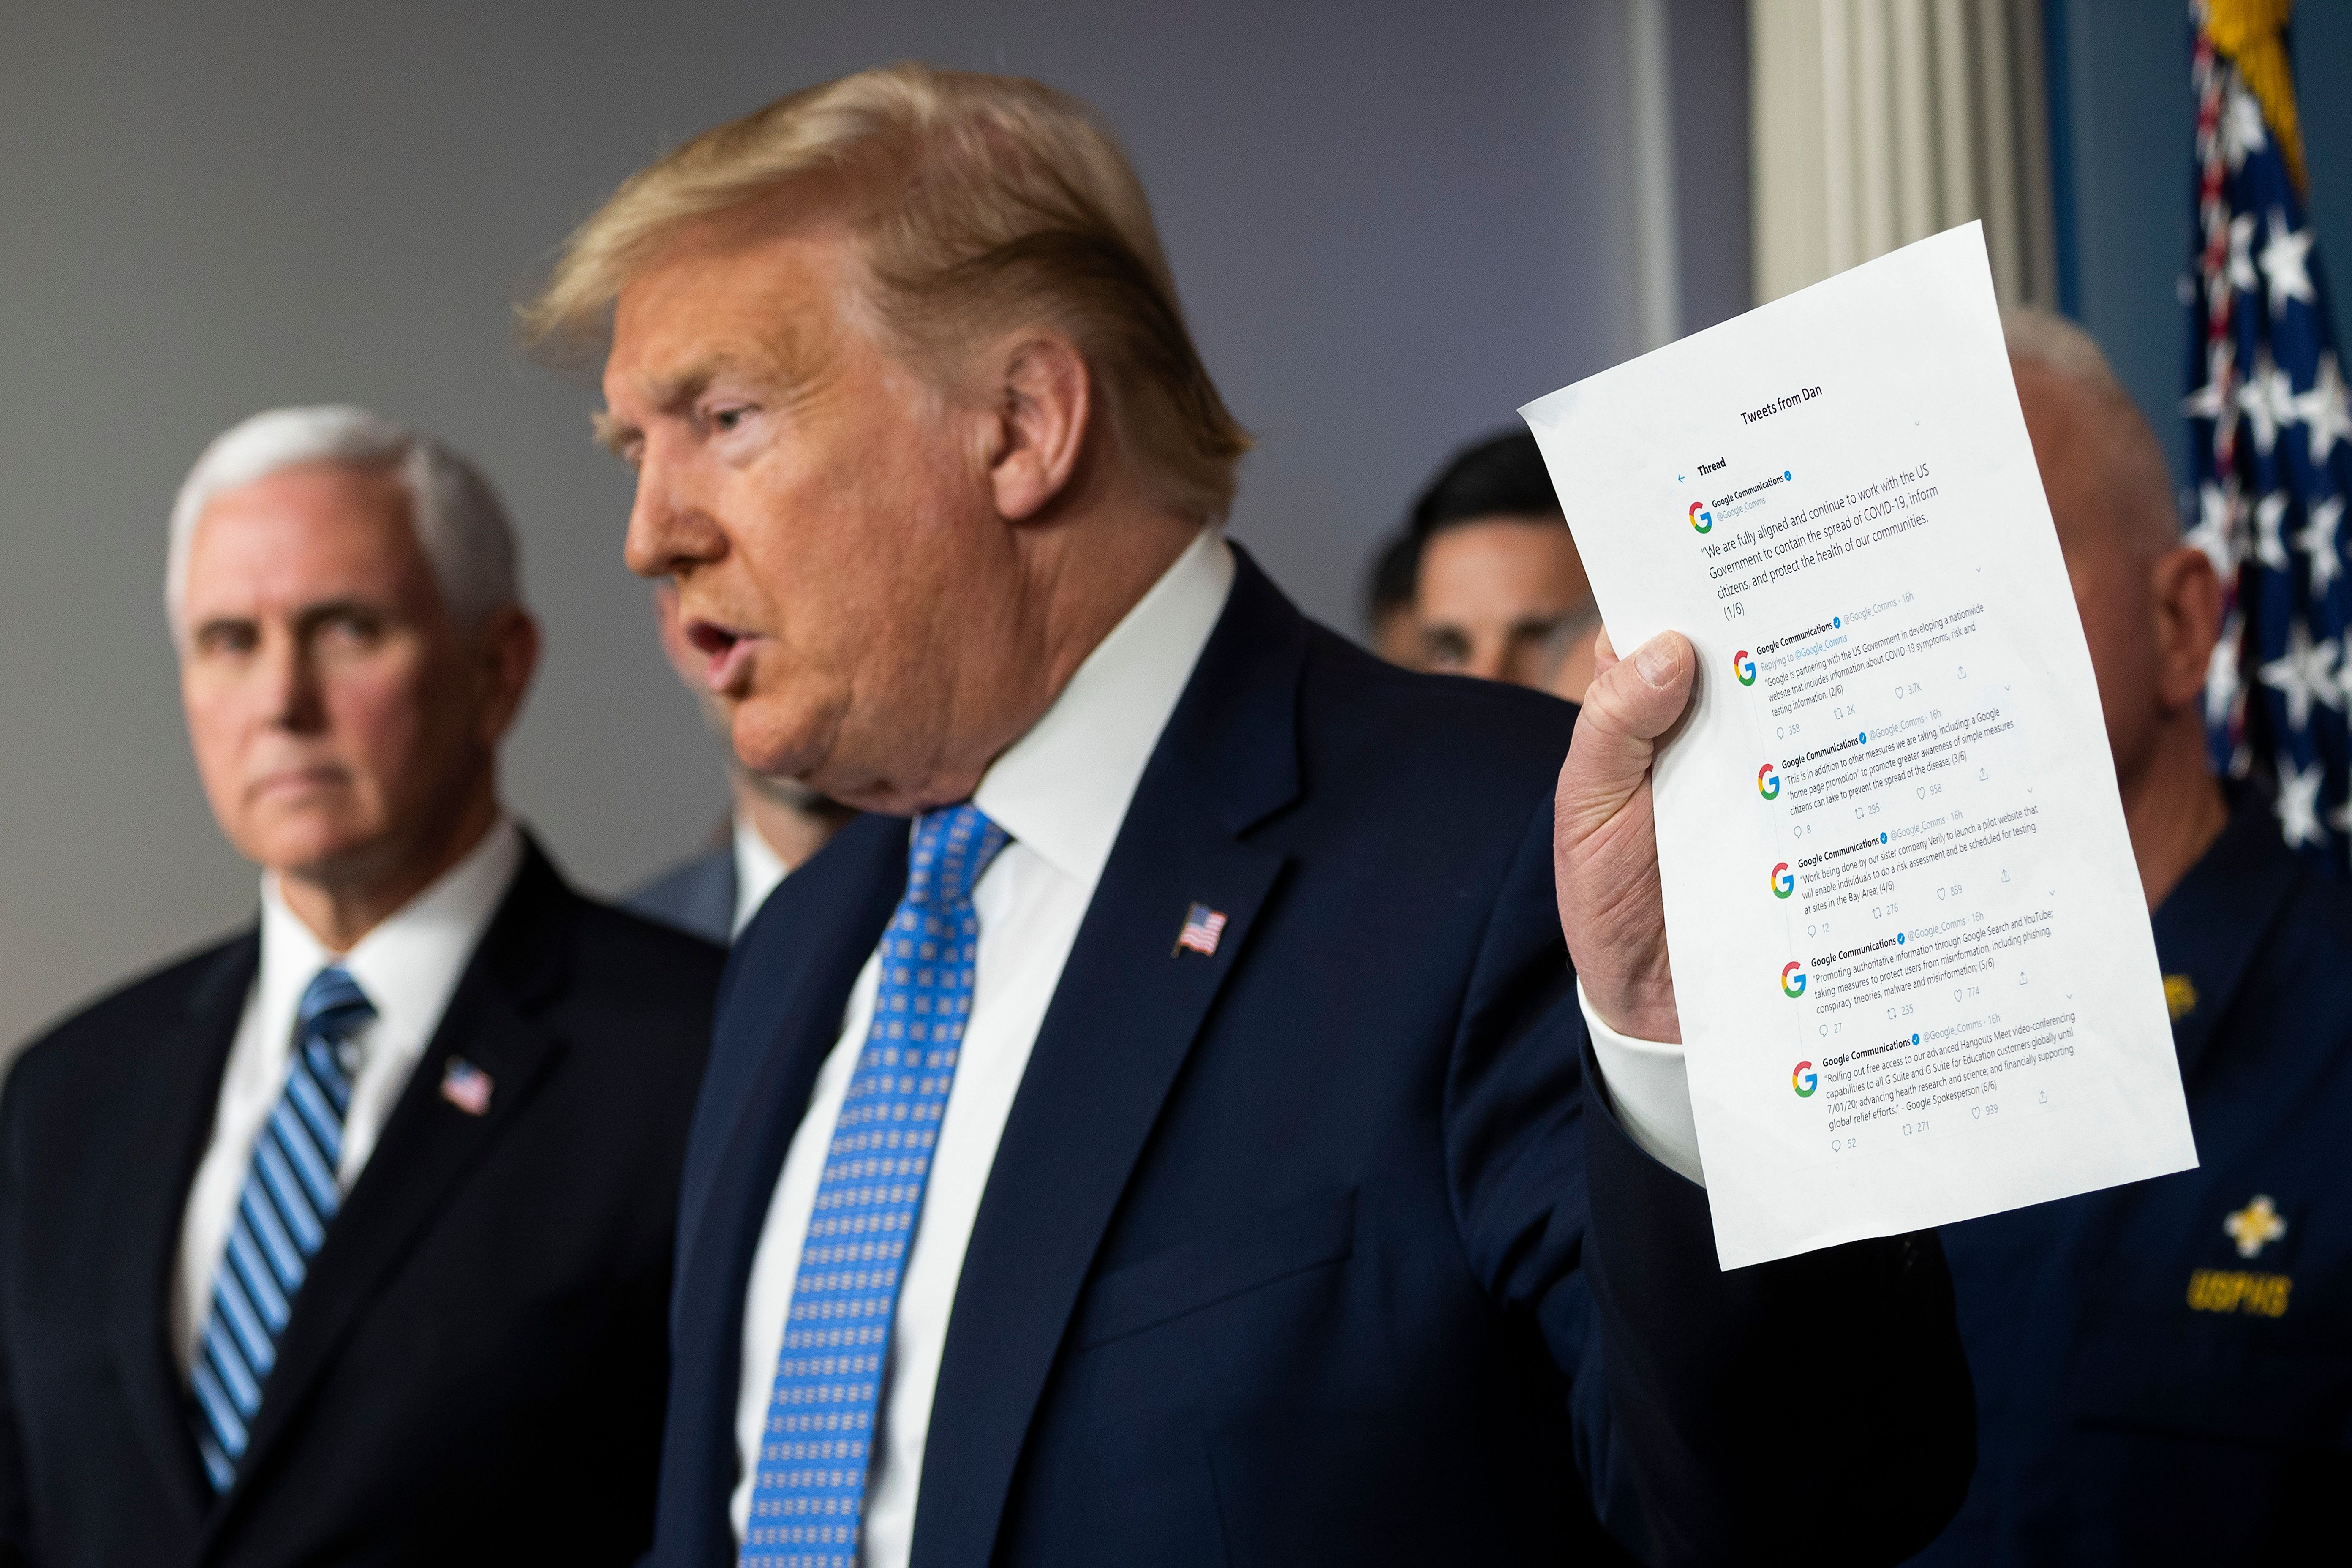 President Trump holds up a printout of tweets from Google's communication team at a press conference on March 15, 2020.